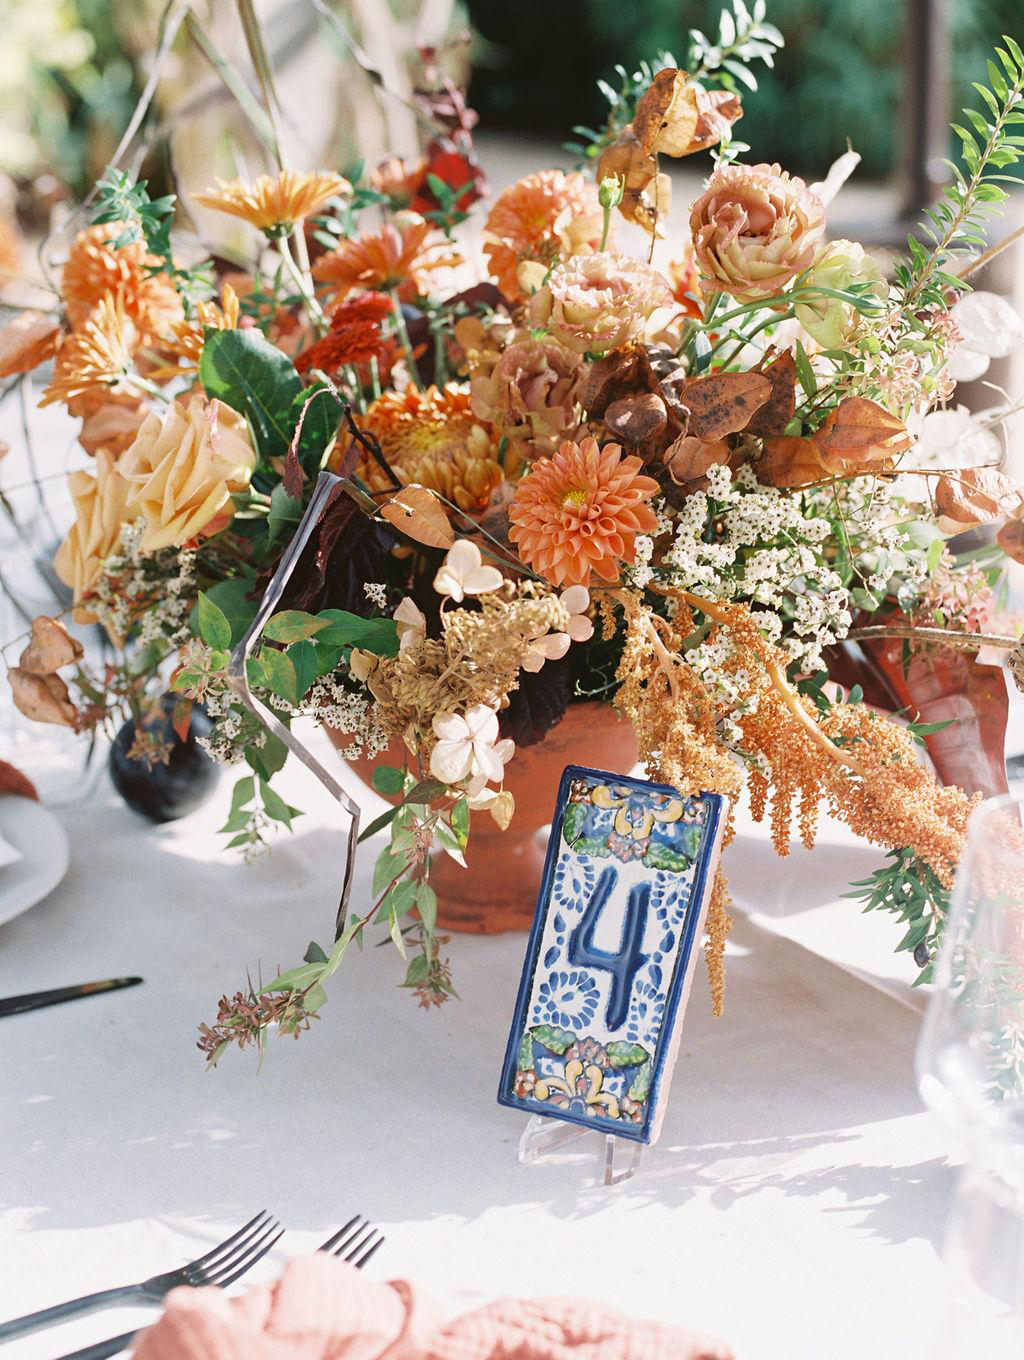 dahlias rust astilbe roses fall floral arrangement blue tile table number